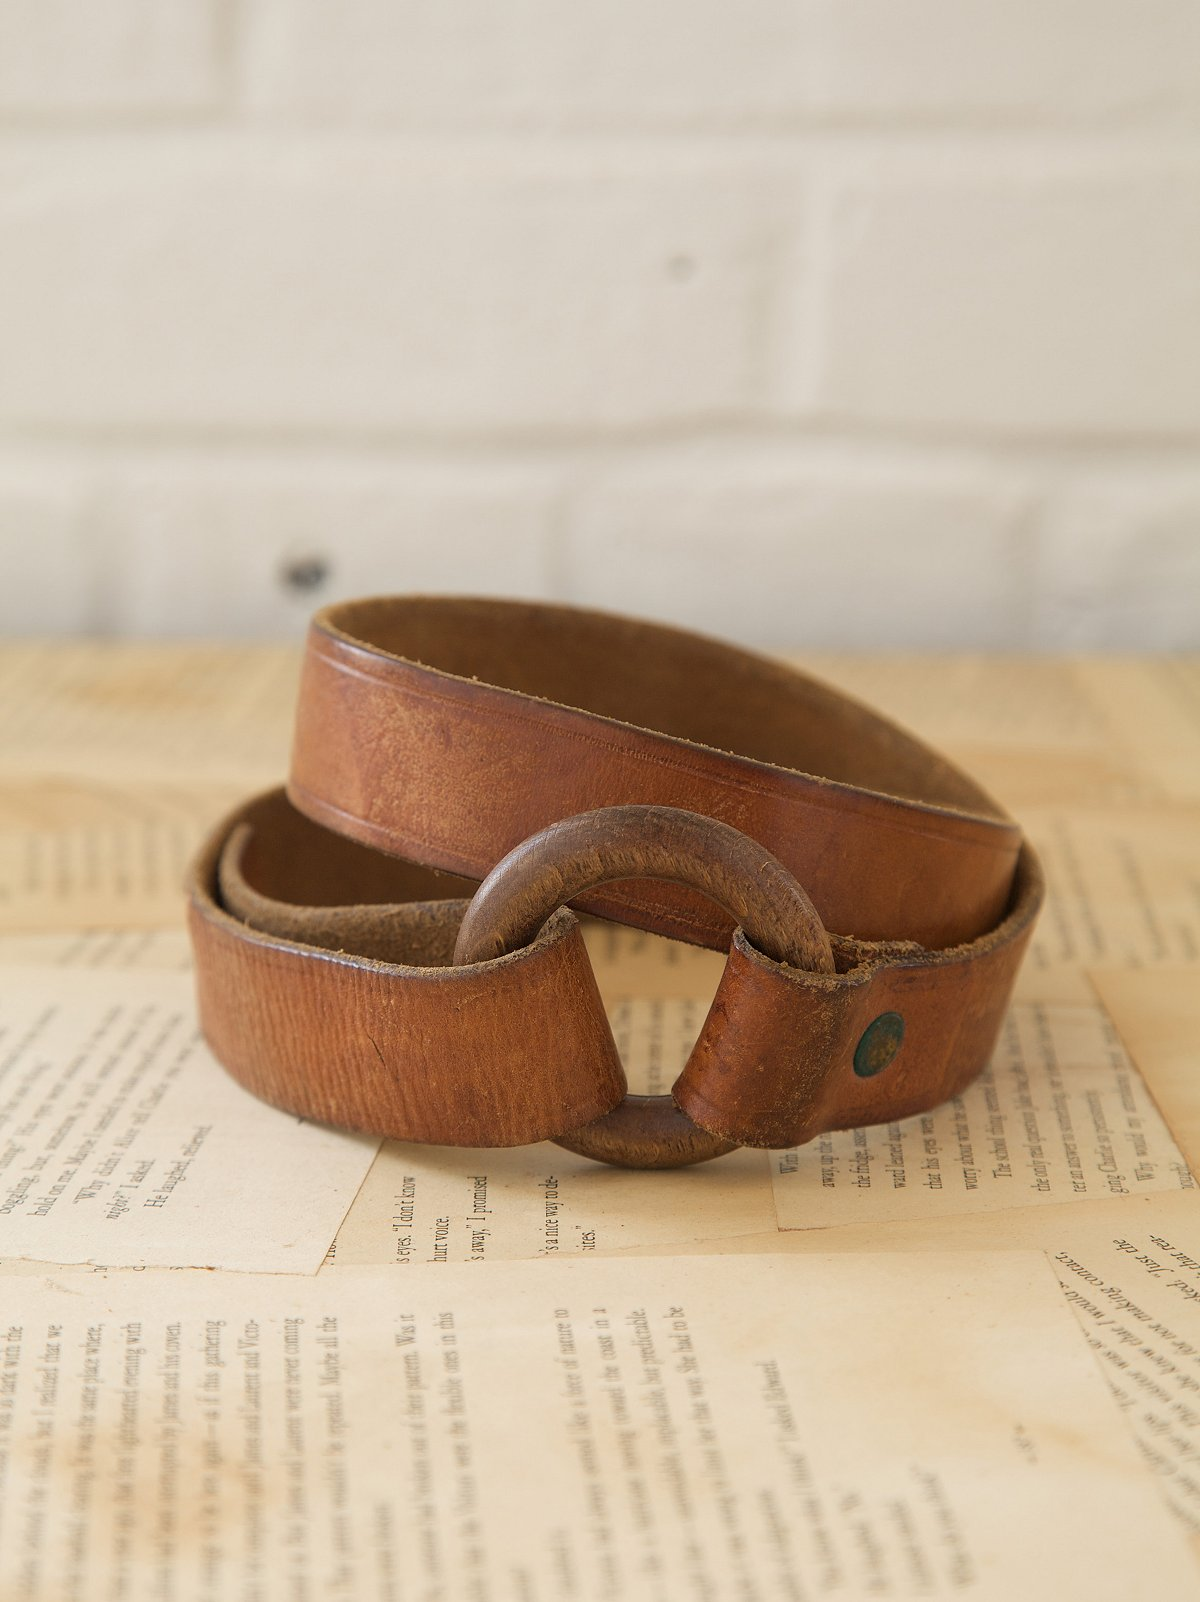 Vintage Leather Belt with Wooden Ring Closure